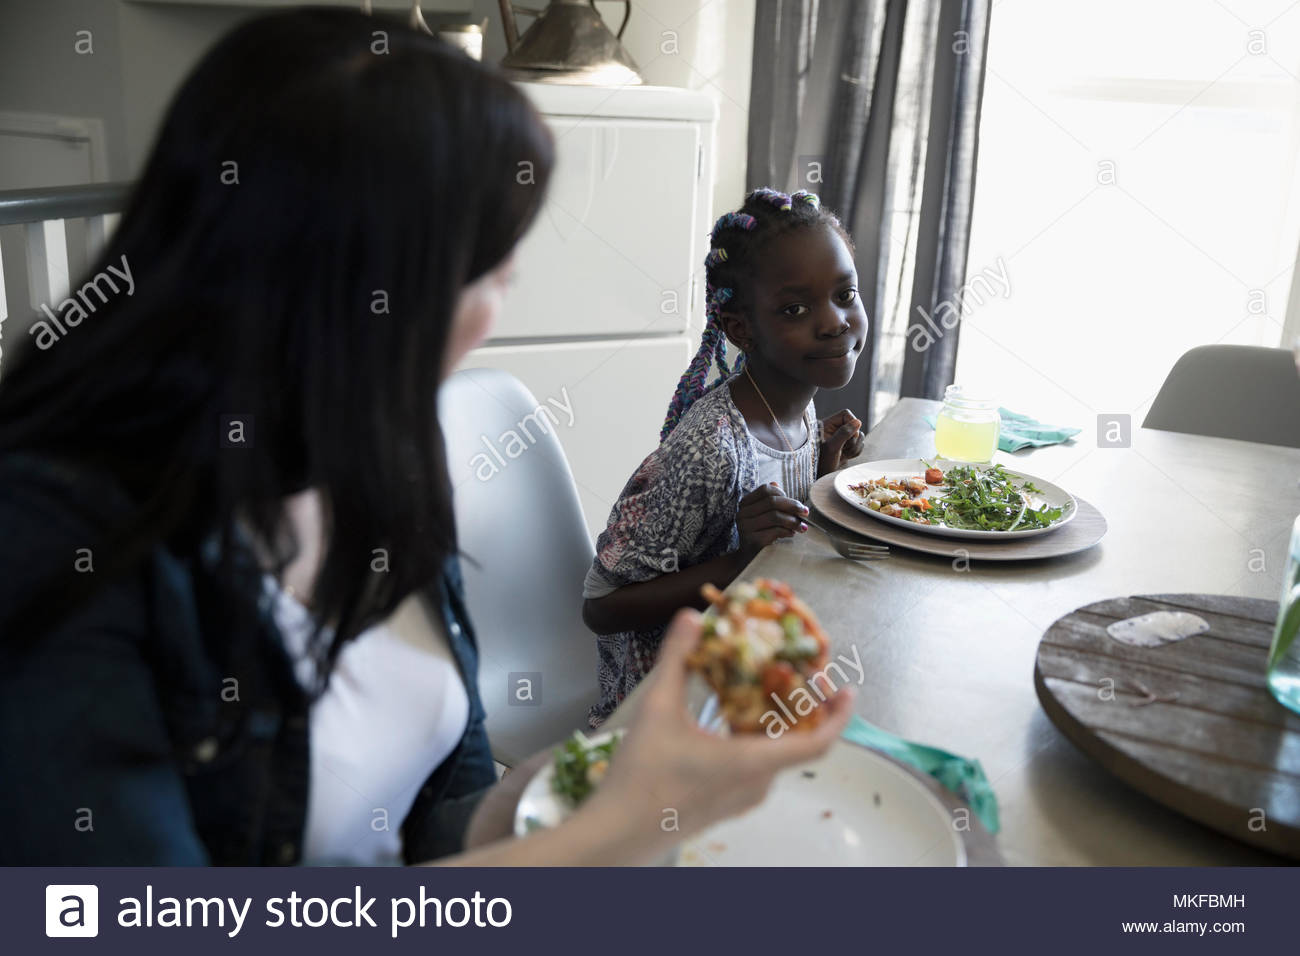 Mère et fille de manger des pizzas et salade à table à manger Photo Stock